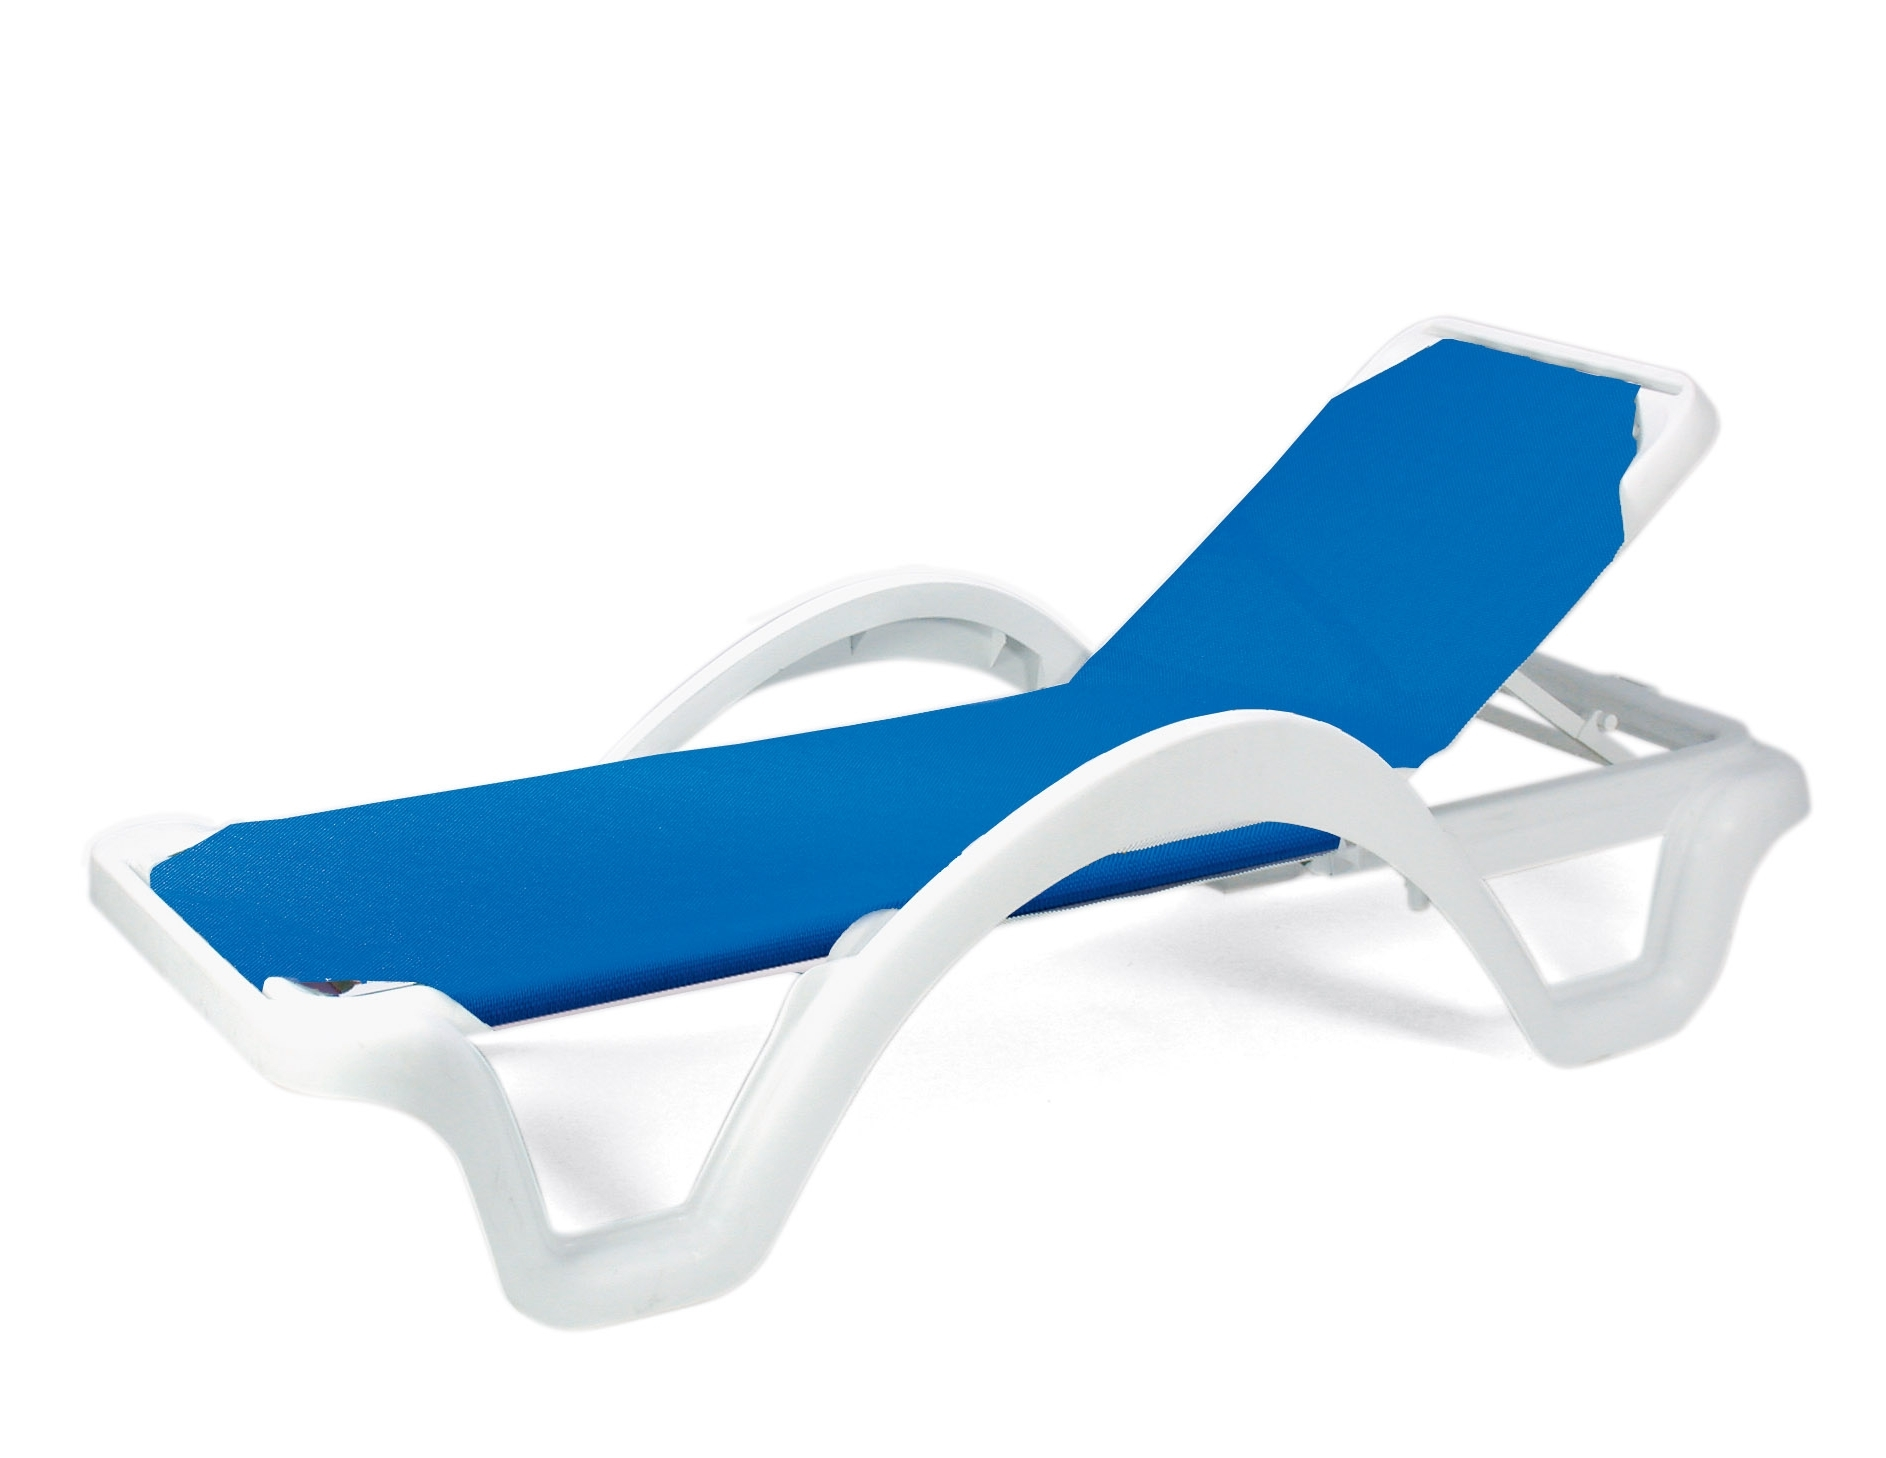 Commercial Grade Chaise Lounge Chairs Regarding Most Up To Date Grosfillex Chaise Lounge Chairs (View 11 of 15)